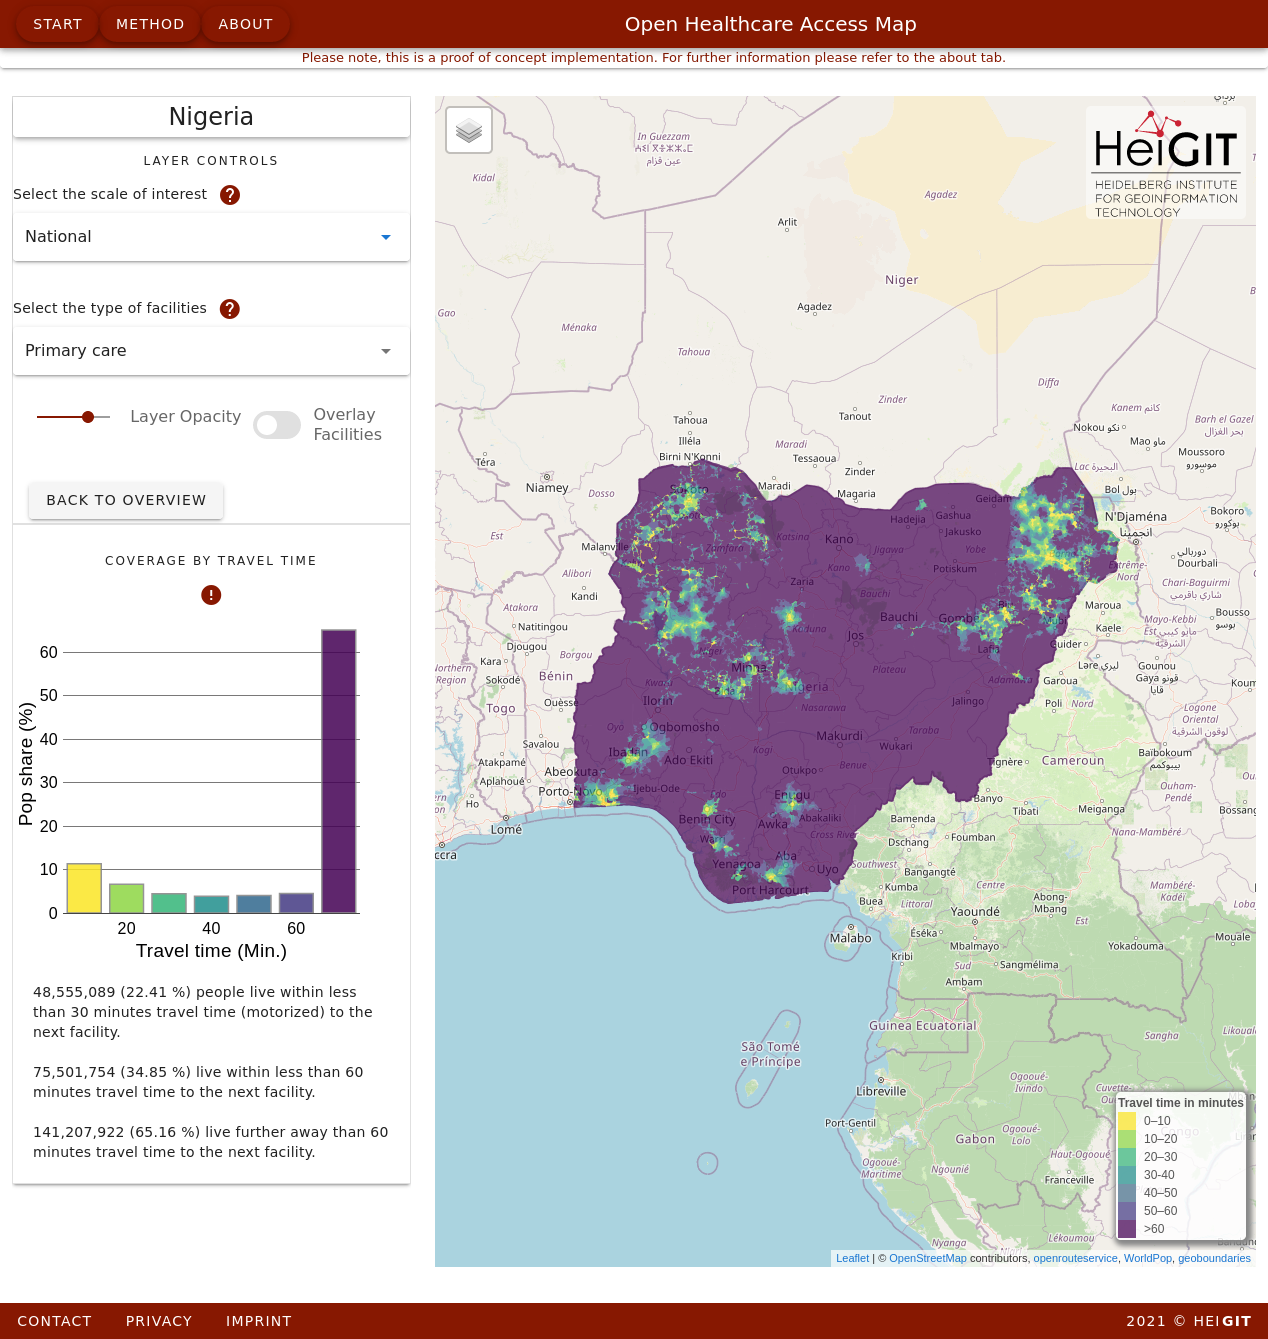 Nigeria country scale for secondary and tertiary healthcare facilities.